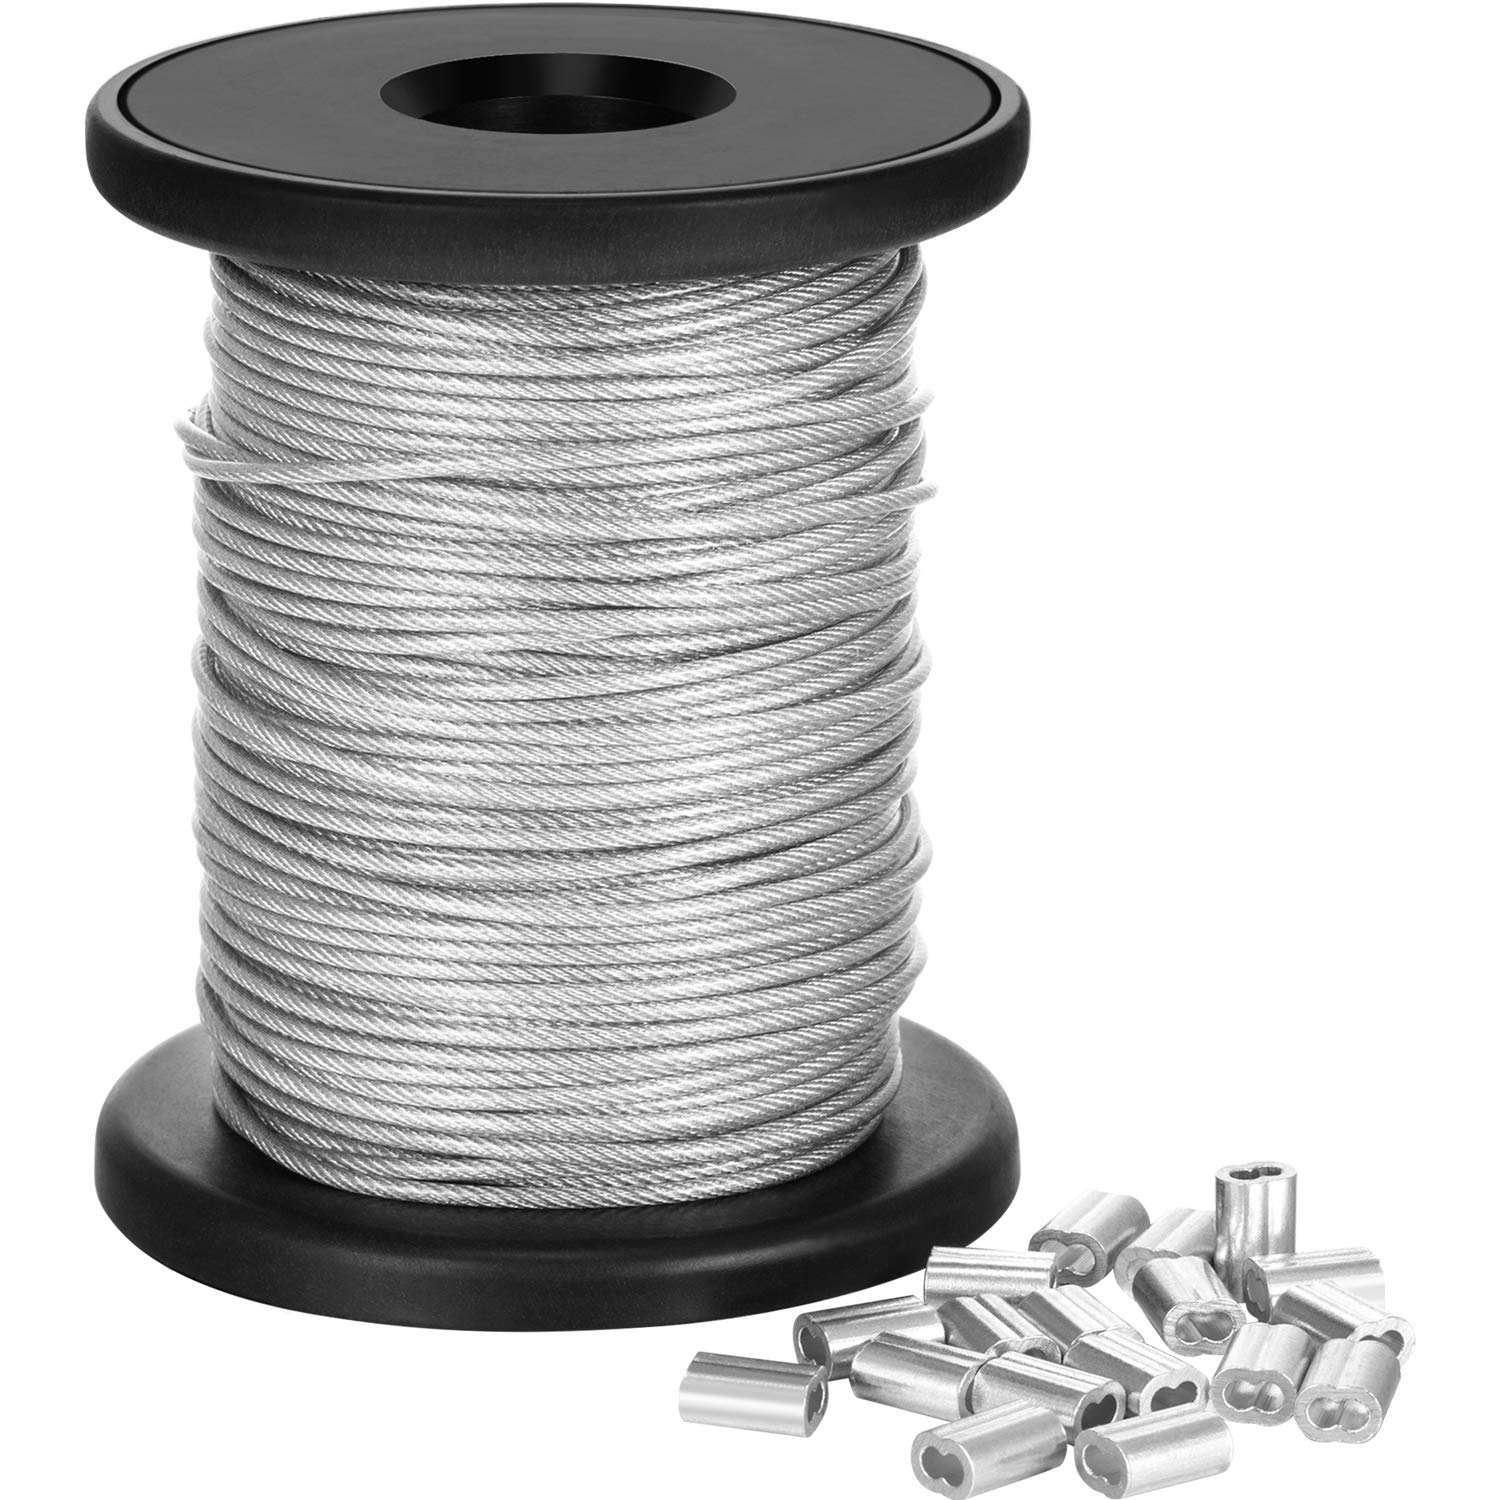 Chengu Vinyl Coated Picture Frame Hanging Wire, Stainless Steel Wire Spool with 20 Pieces Aluminum Crimping Loop Sleeve, Supports up to 110 Lbs (1.5 mm x 98 Feet) by Chengu (Image #1)